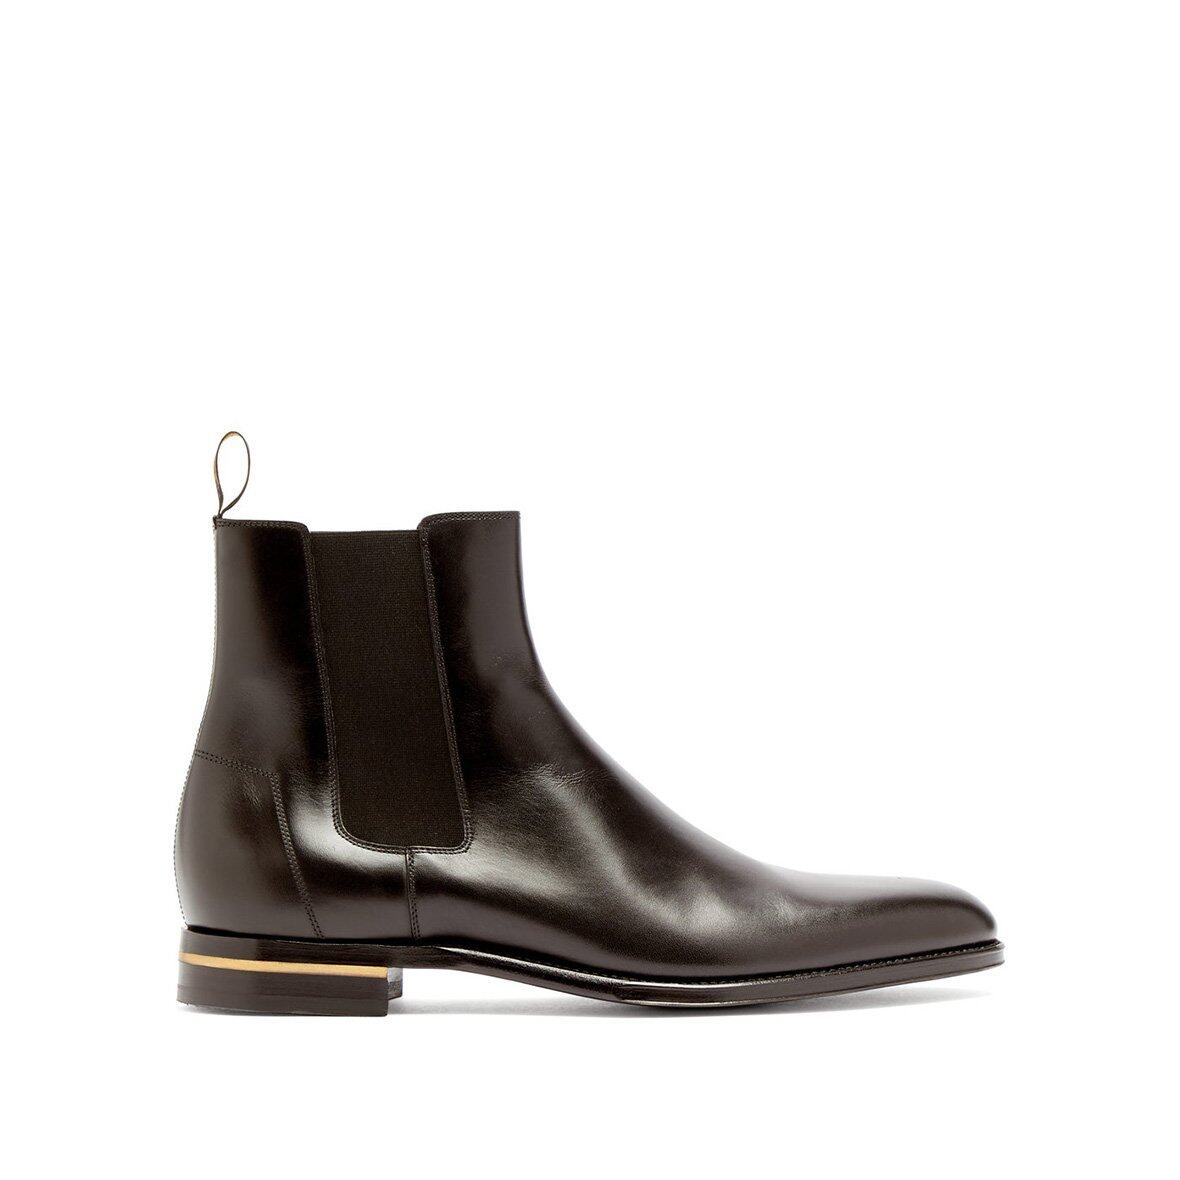 Dunhill Chelsea Boots